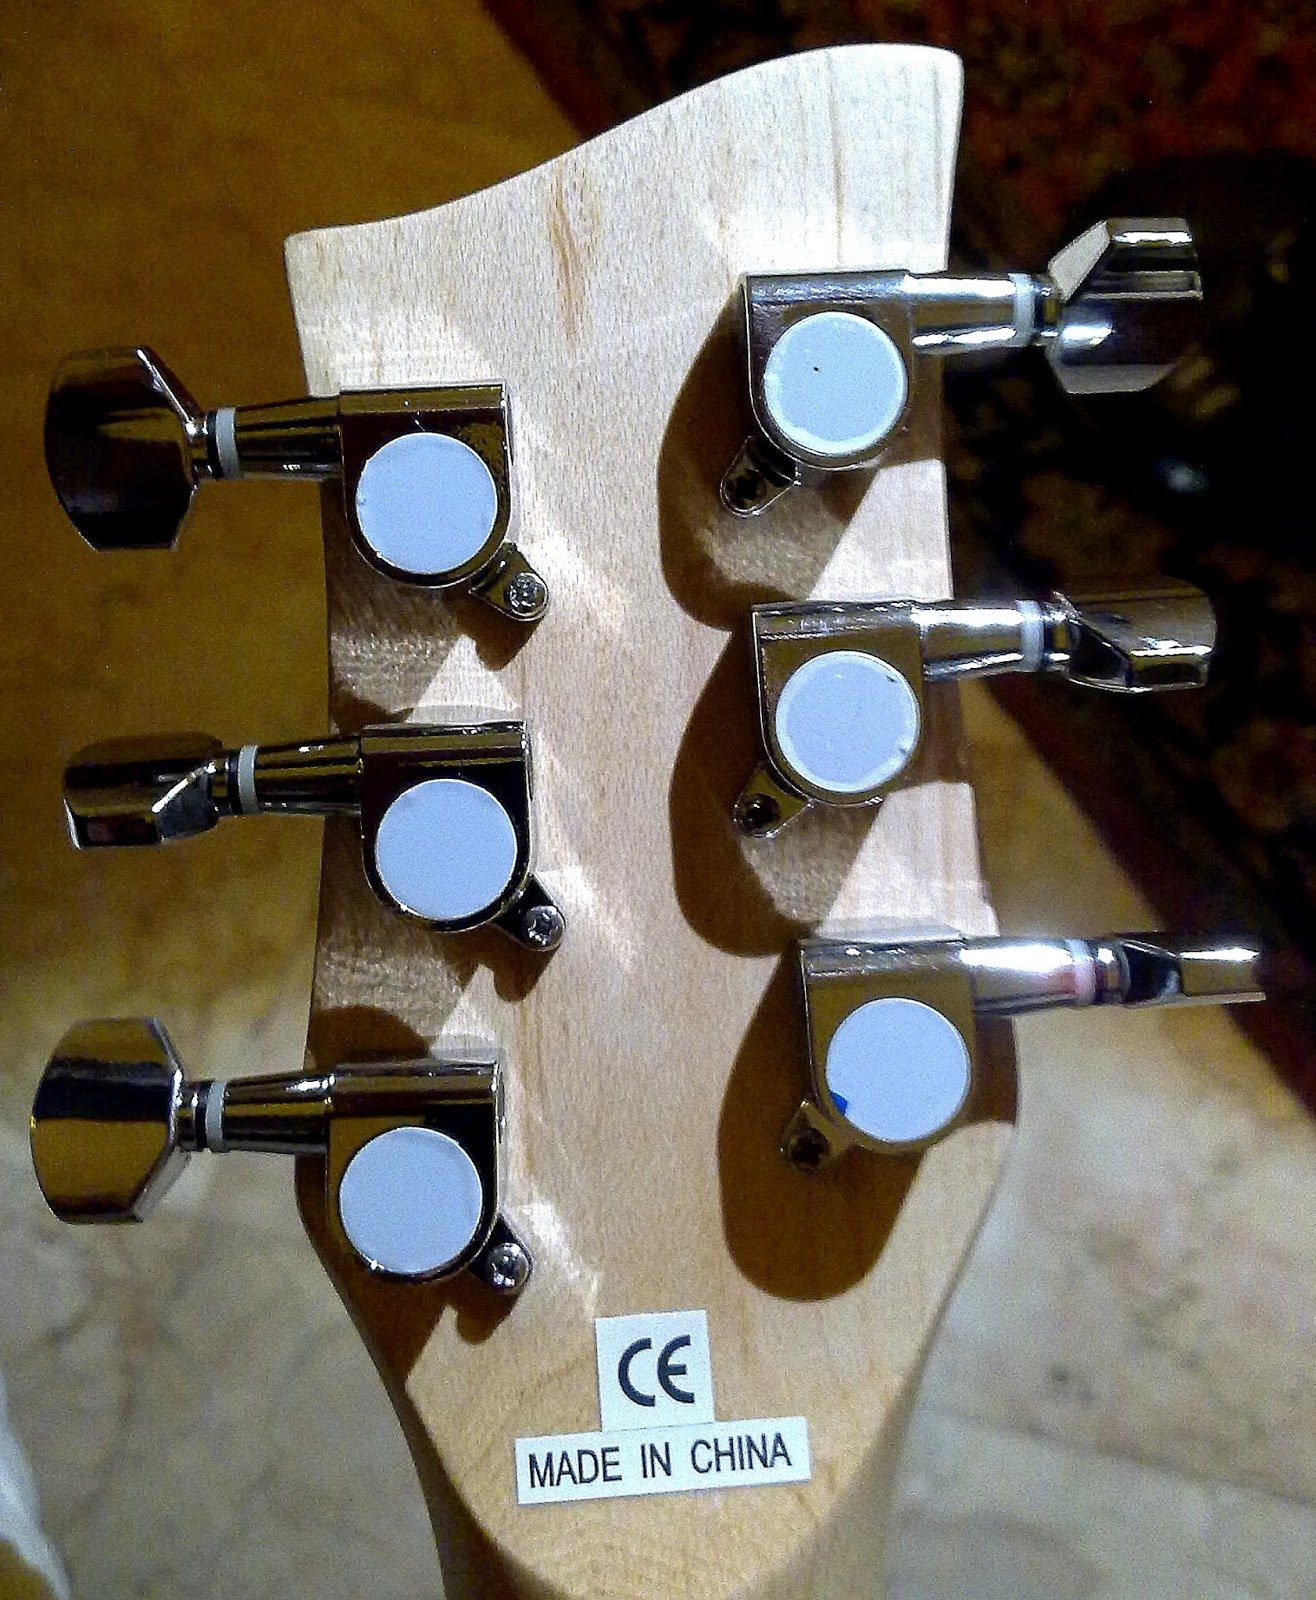 medium resolution of at the head stock i unscrewed the hexagonal top nut of one tuner and found its centre post wiggling merrily after unscrewing one phillips screw from the